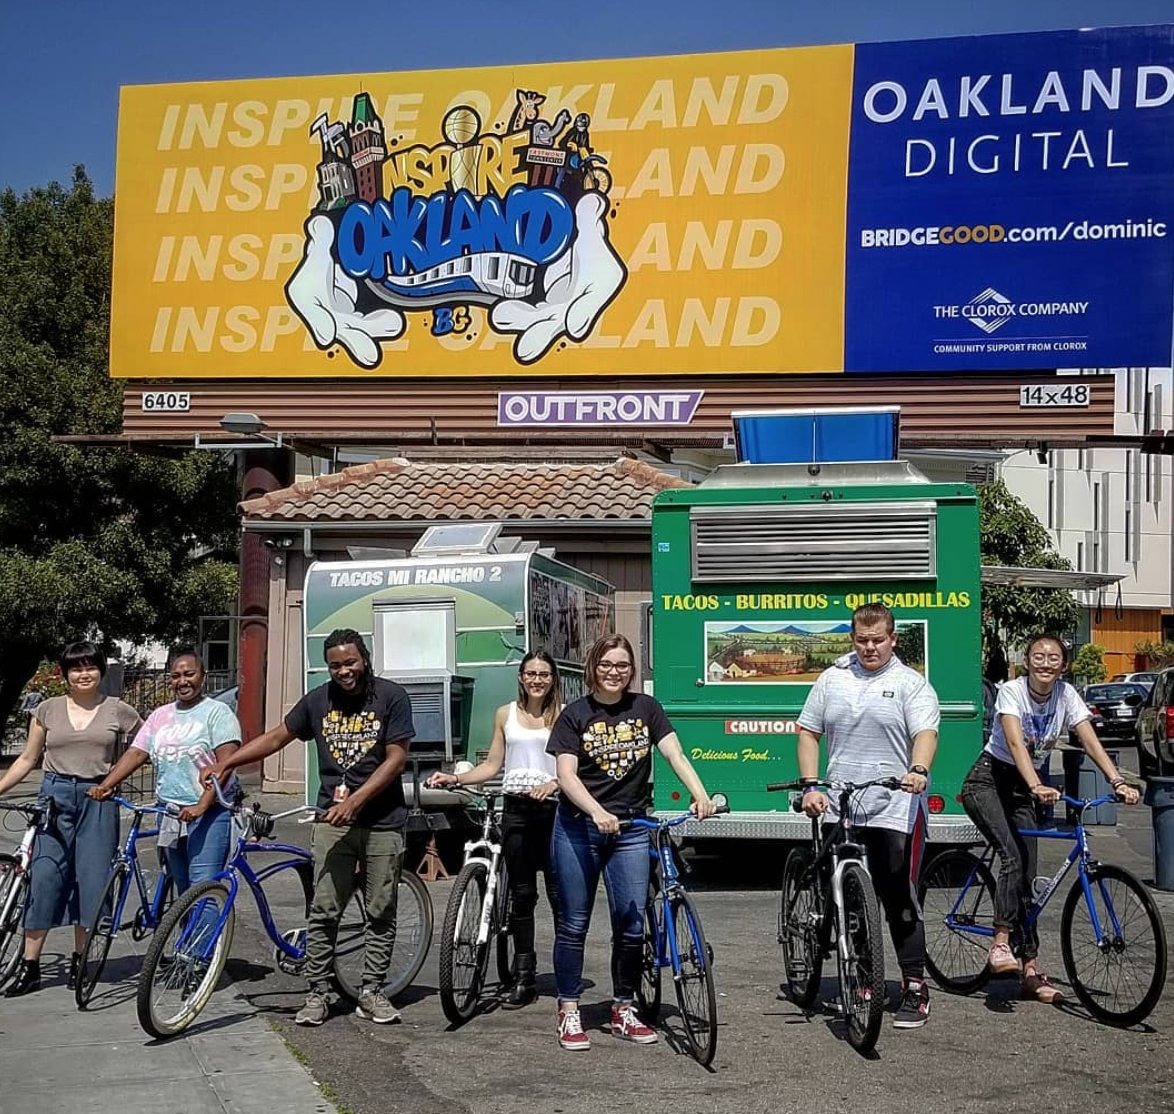 BREAKING: #OaklandDigital launches #InspireOakland 2018 campaign! Student artwork proudly featured on billboards, benches, and buses throughout #Oakland &amp; #EastBay!! Yes, creativity is alive, thriving, and inspiring community!!! #BRIDGEGOOD | Together,  http://www. bridgegood.com  &nbsp;  <br>http://pic.twitter.com/fq6F0d5i4s